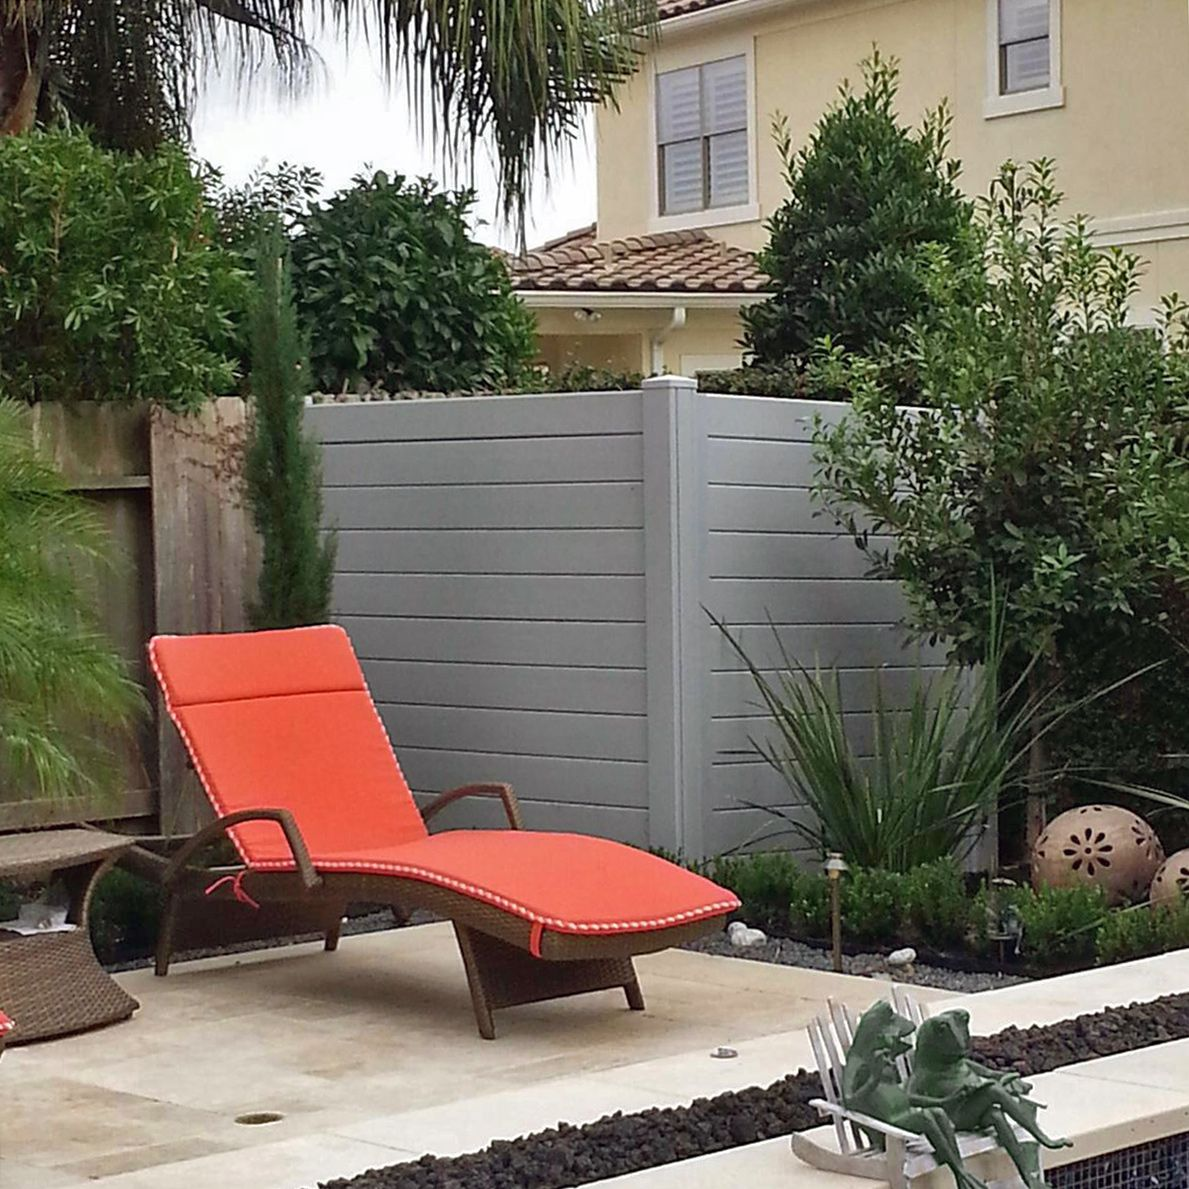 Reduce Outdoor Noise Sound proofing, Outdoor, Noise sound